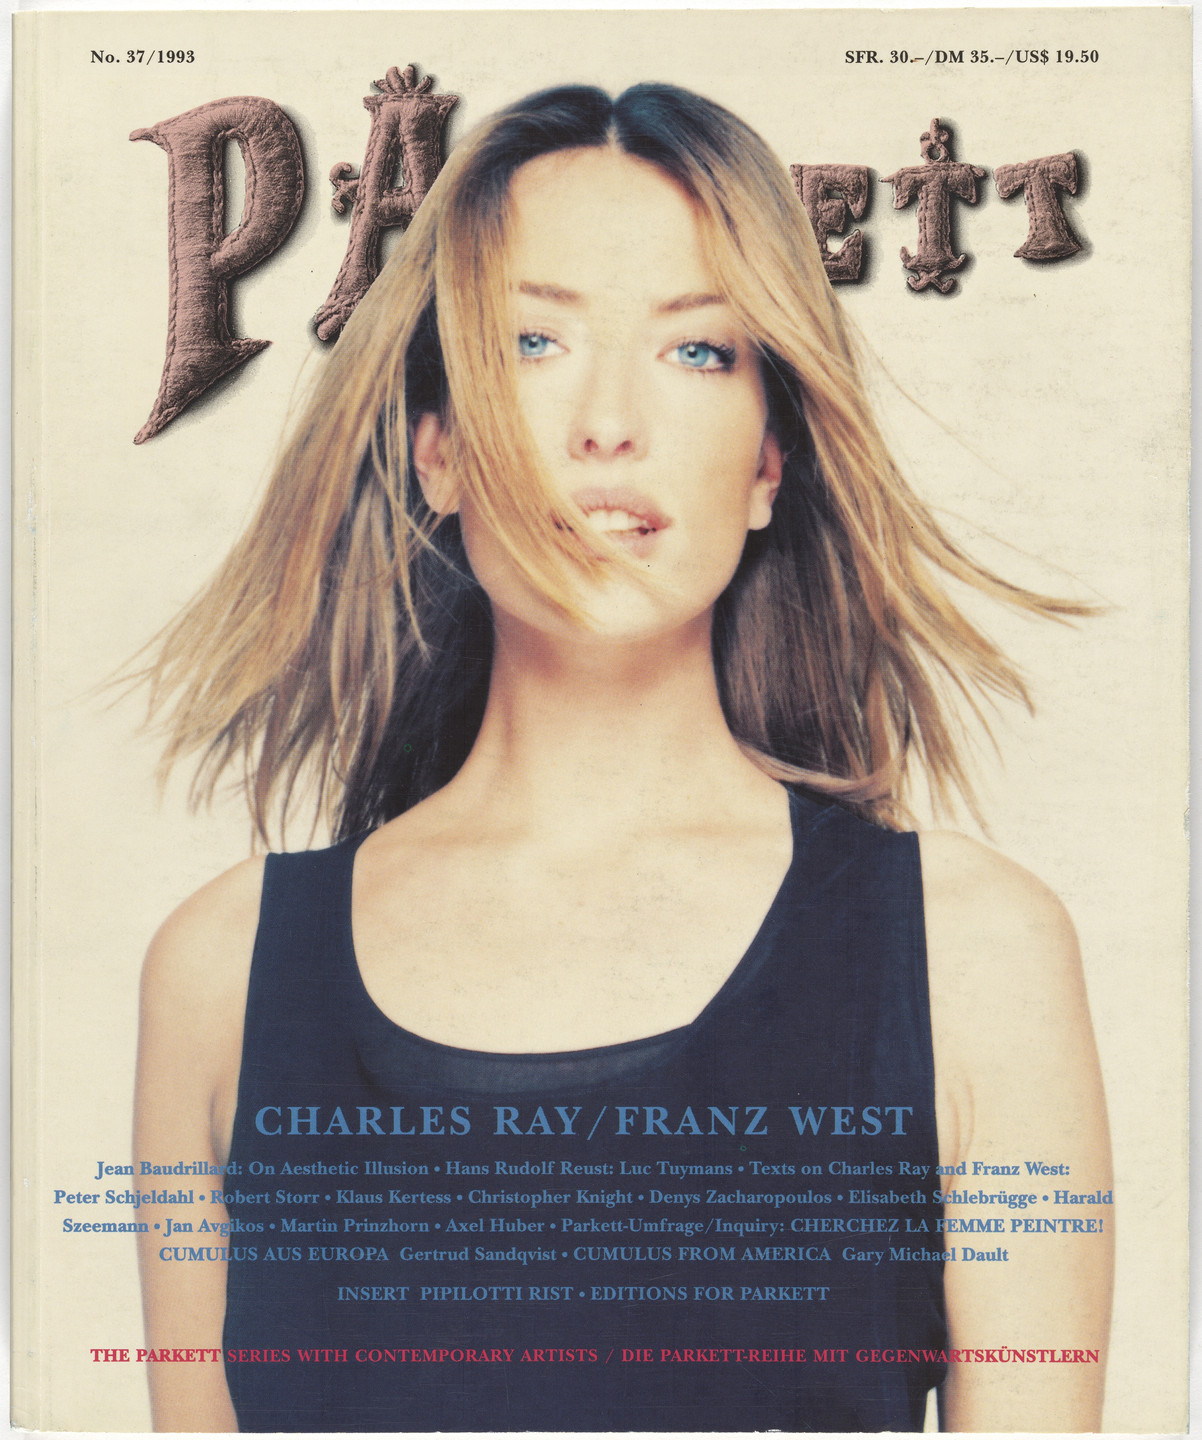 Charles Ray, Franz West, Pipilotti Rist, Jean-Jacques Rullier, Various Artists. Parkett no. 37. 1993